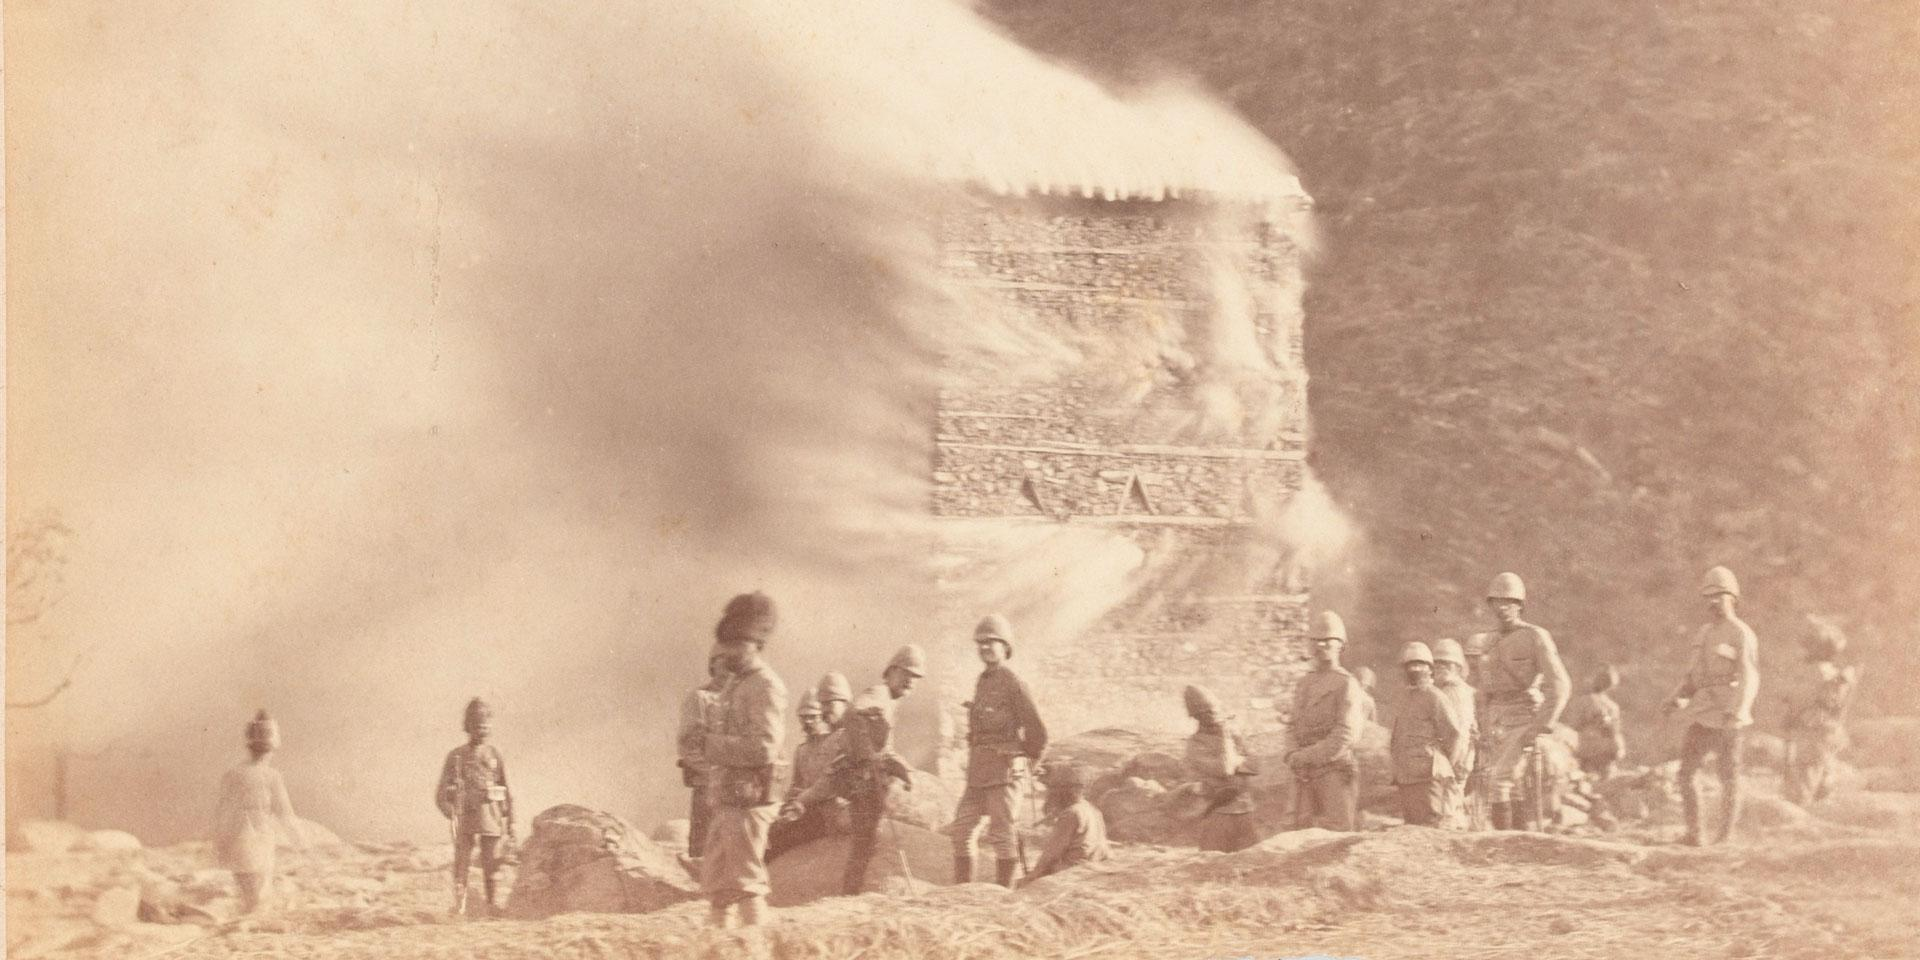 Burning a settlement, Black Mountain Expedition, 1888